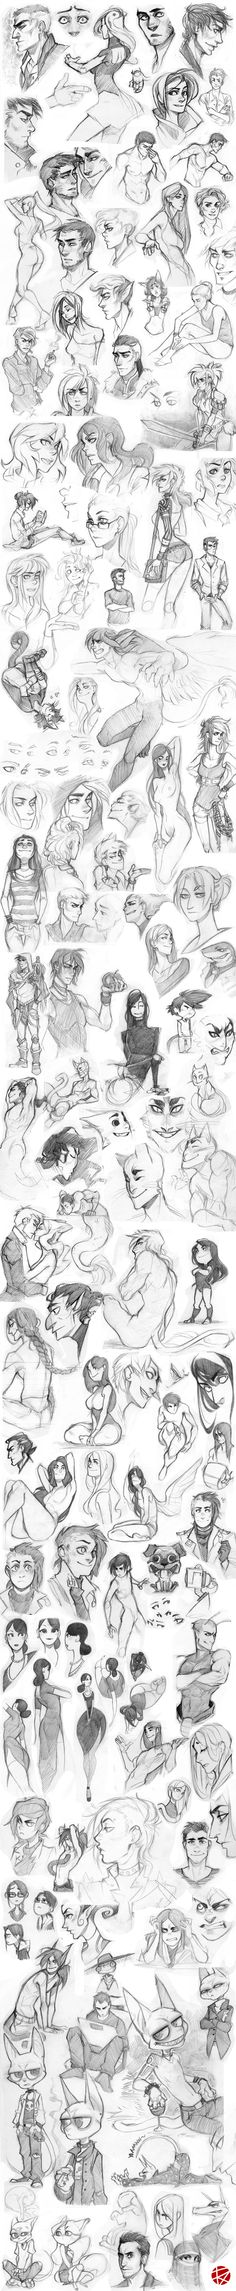 Sketch dump 01 by SylwiaPakulska on deviantART